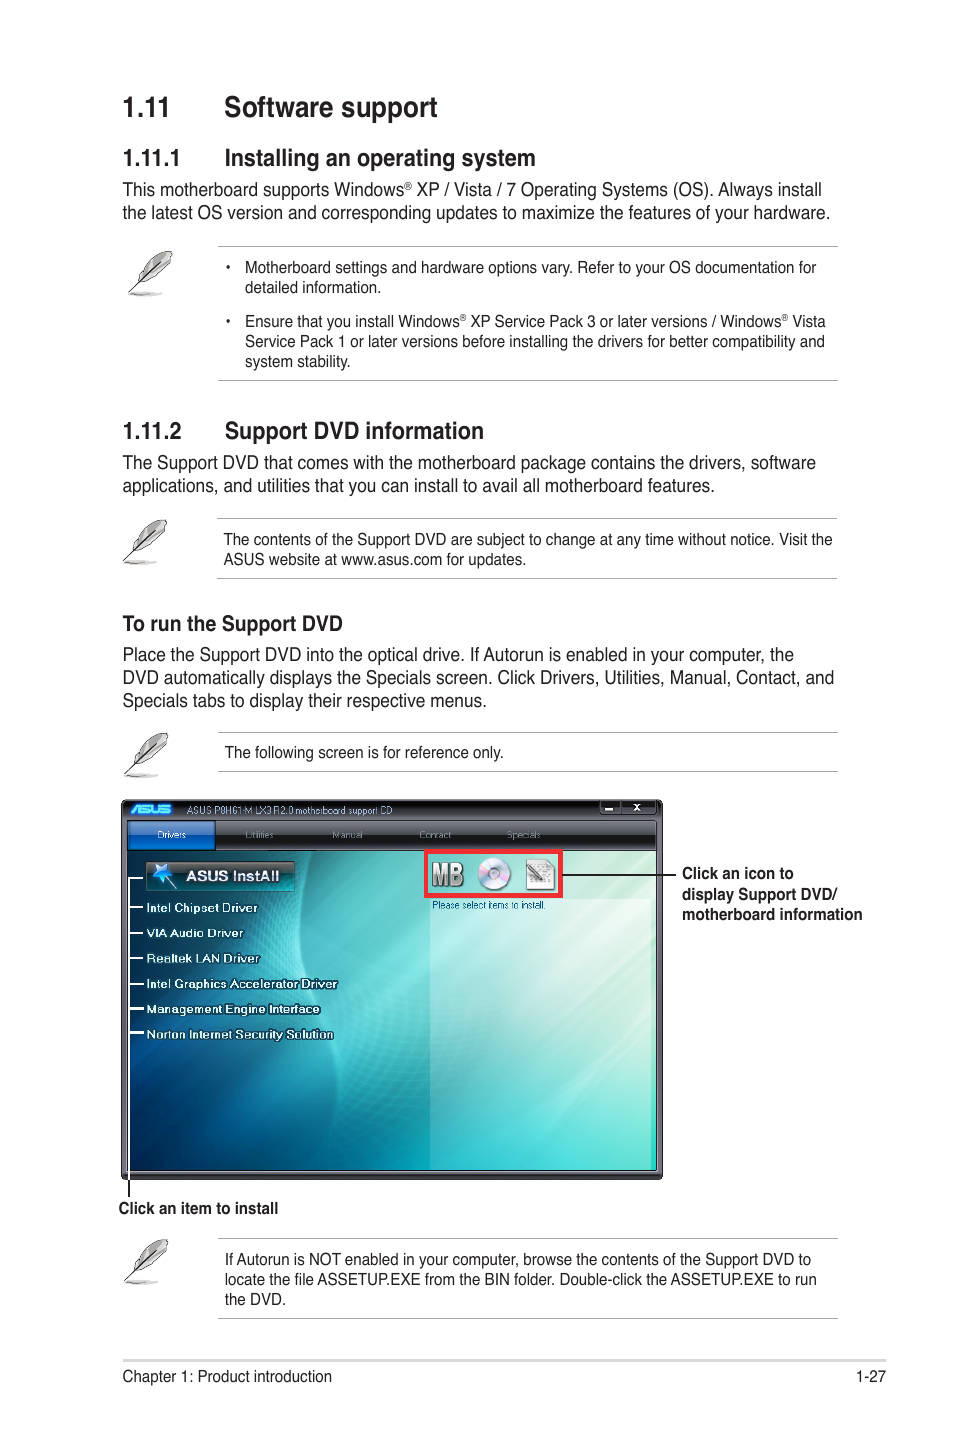 11 software support, 1 installing an operating system, 2 support dvd